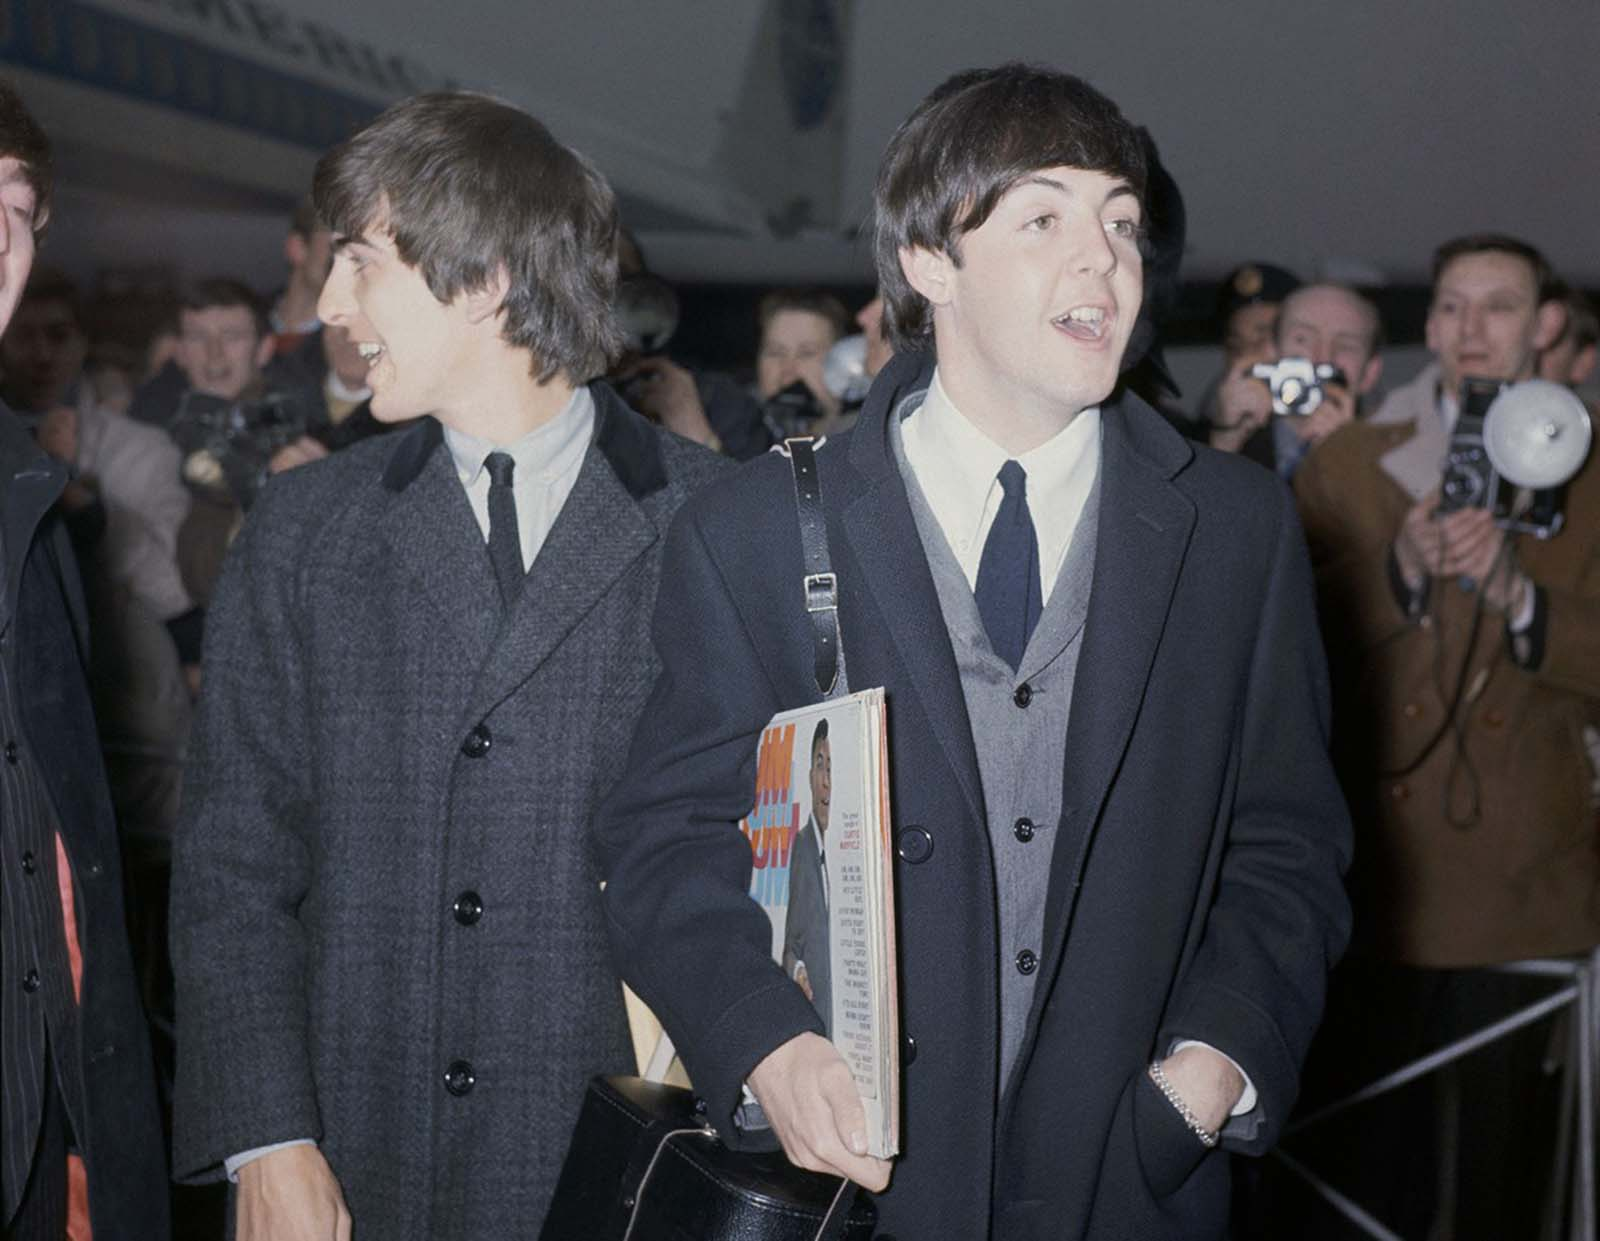 The Beatles arrive at London Airport, England, February 22, 1964, after their visit to the United States. In the foreground is Paul McCartney, carrying record albums under his arm (including